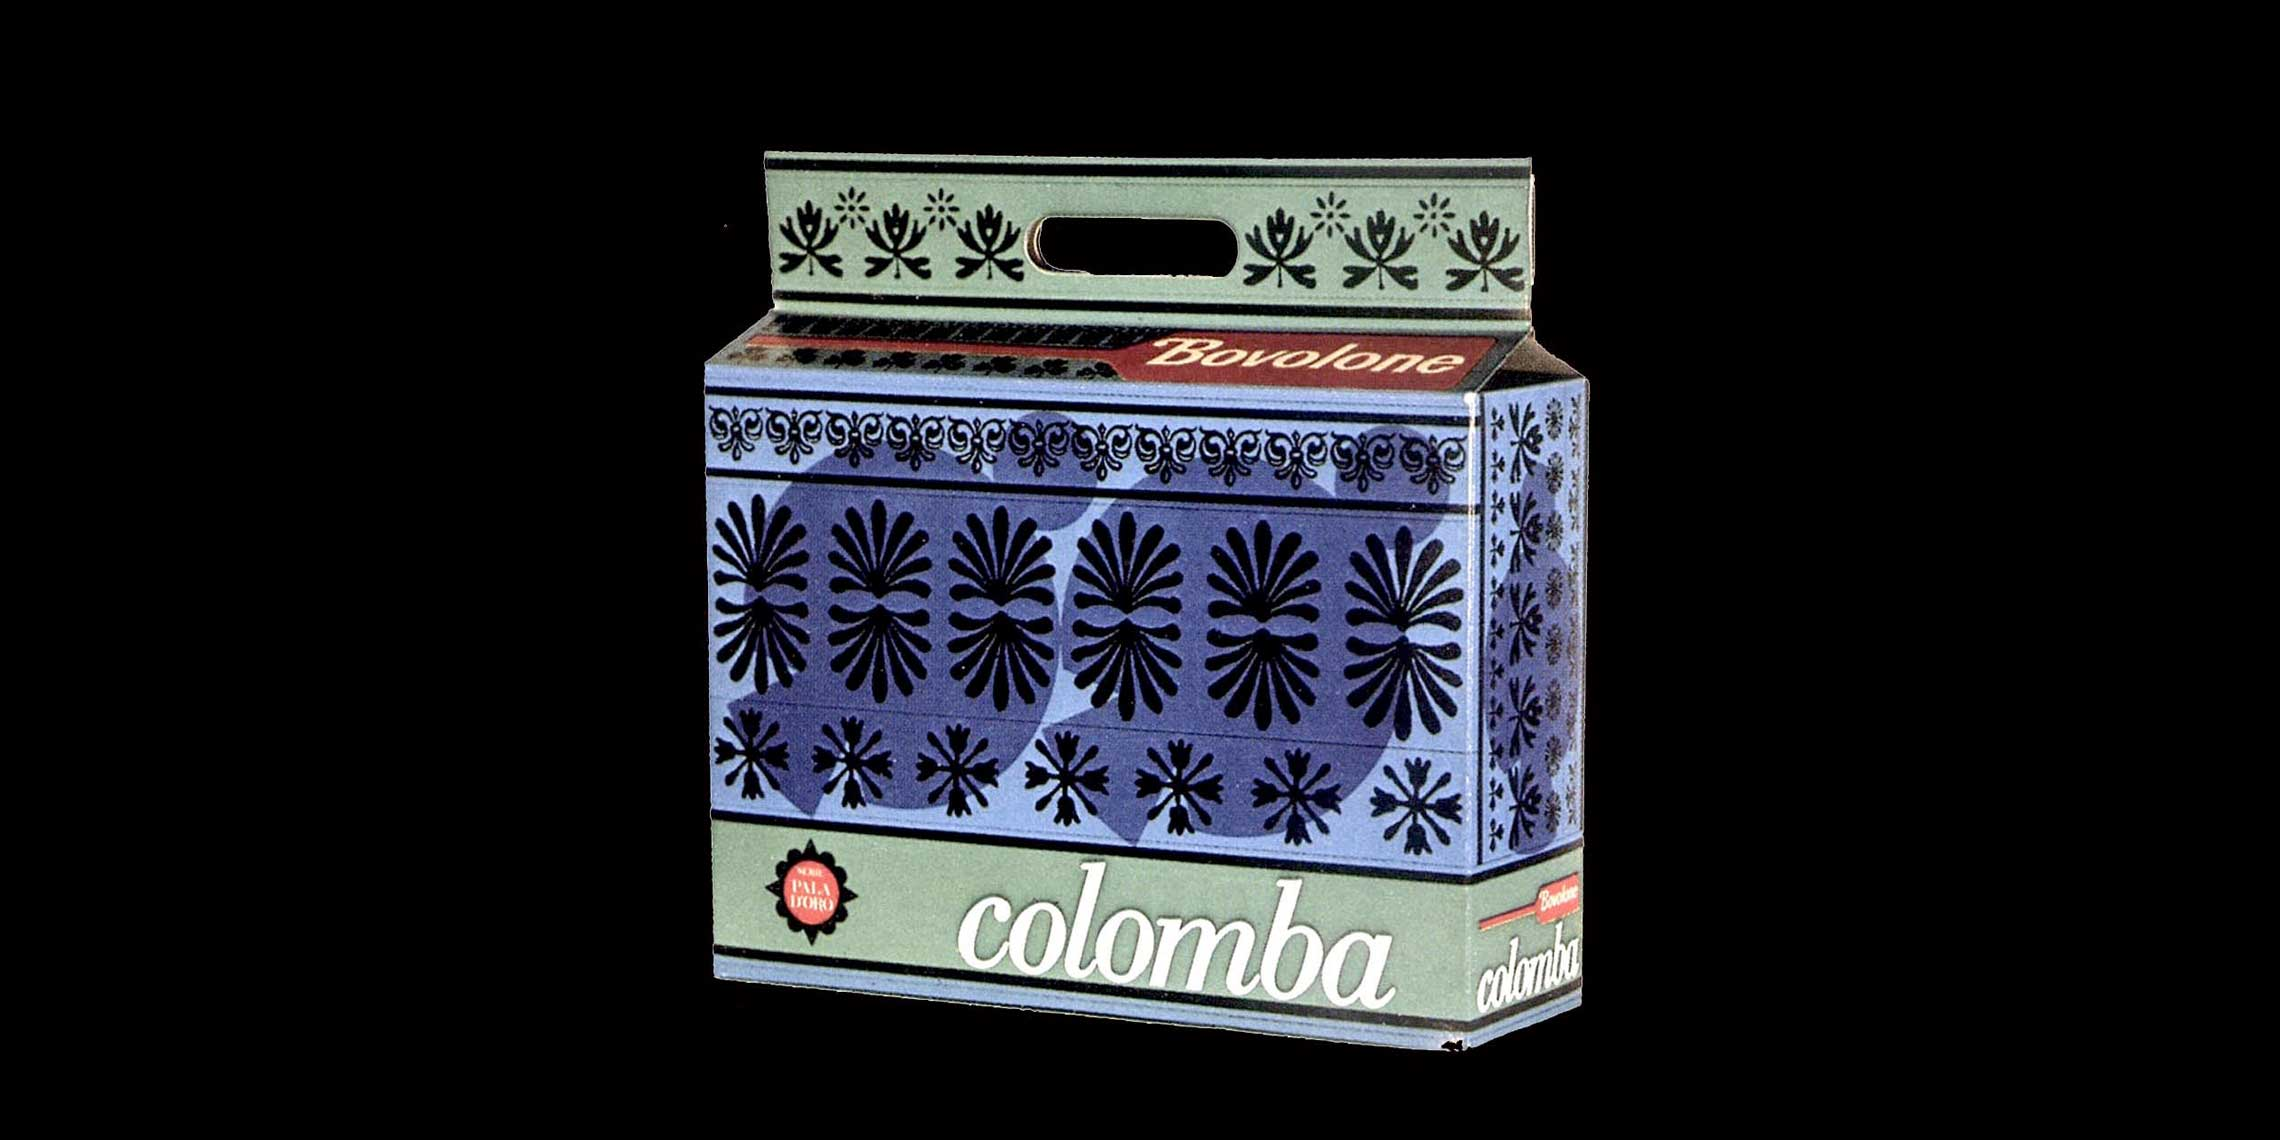 Colomba Bovolone, <em>Packaging</em>, anni '70